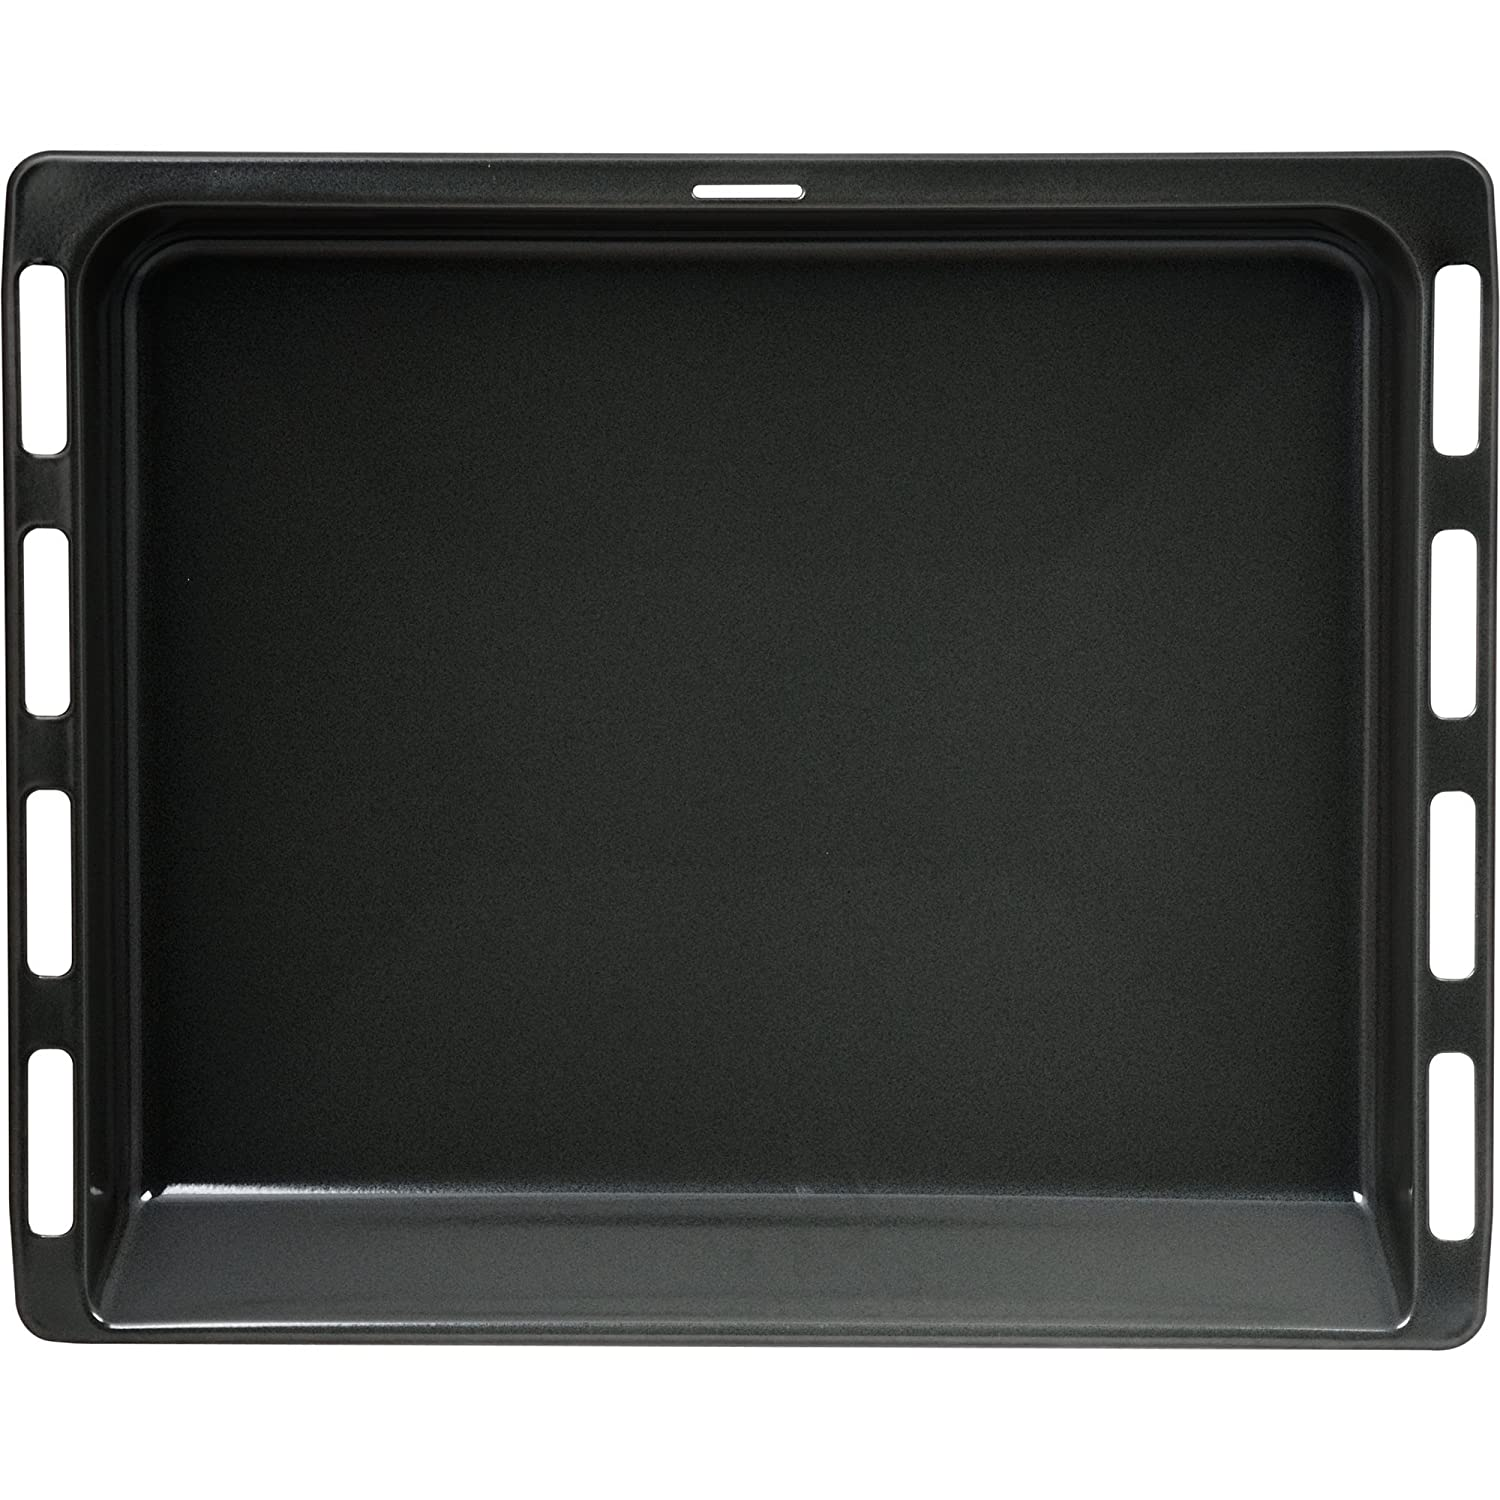 Bosch 6900434178 Tray – For Ovens, Black